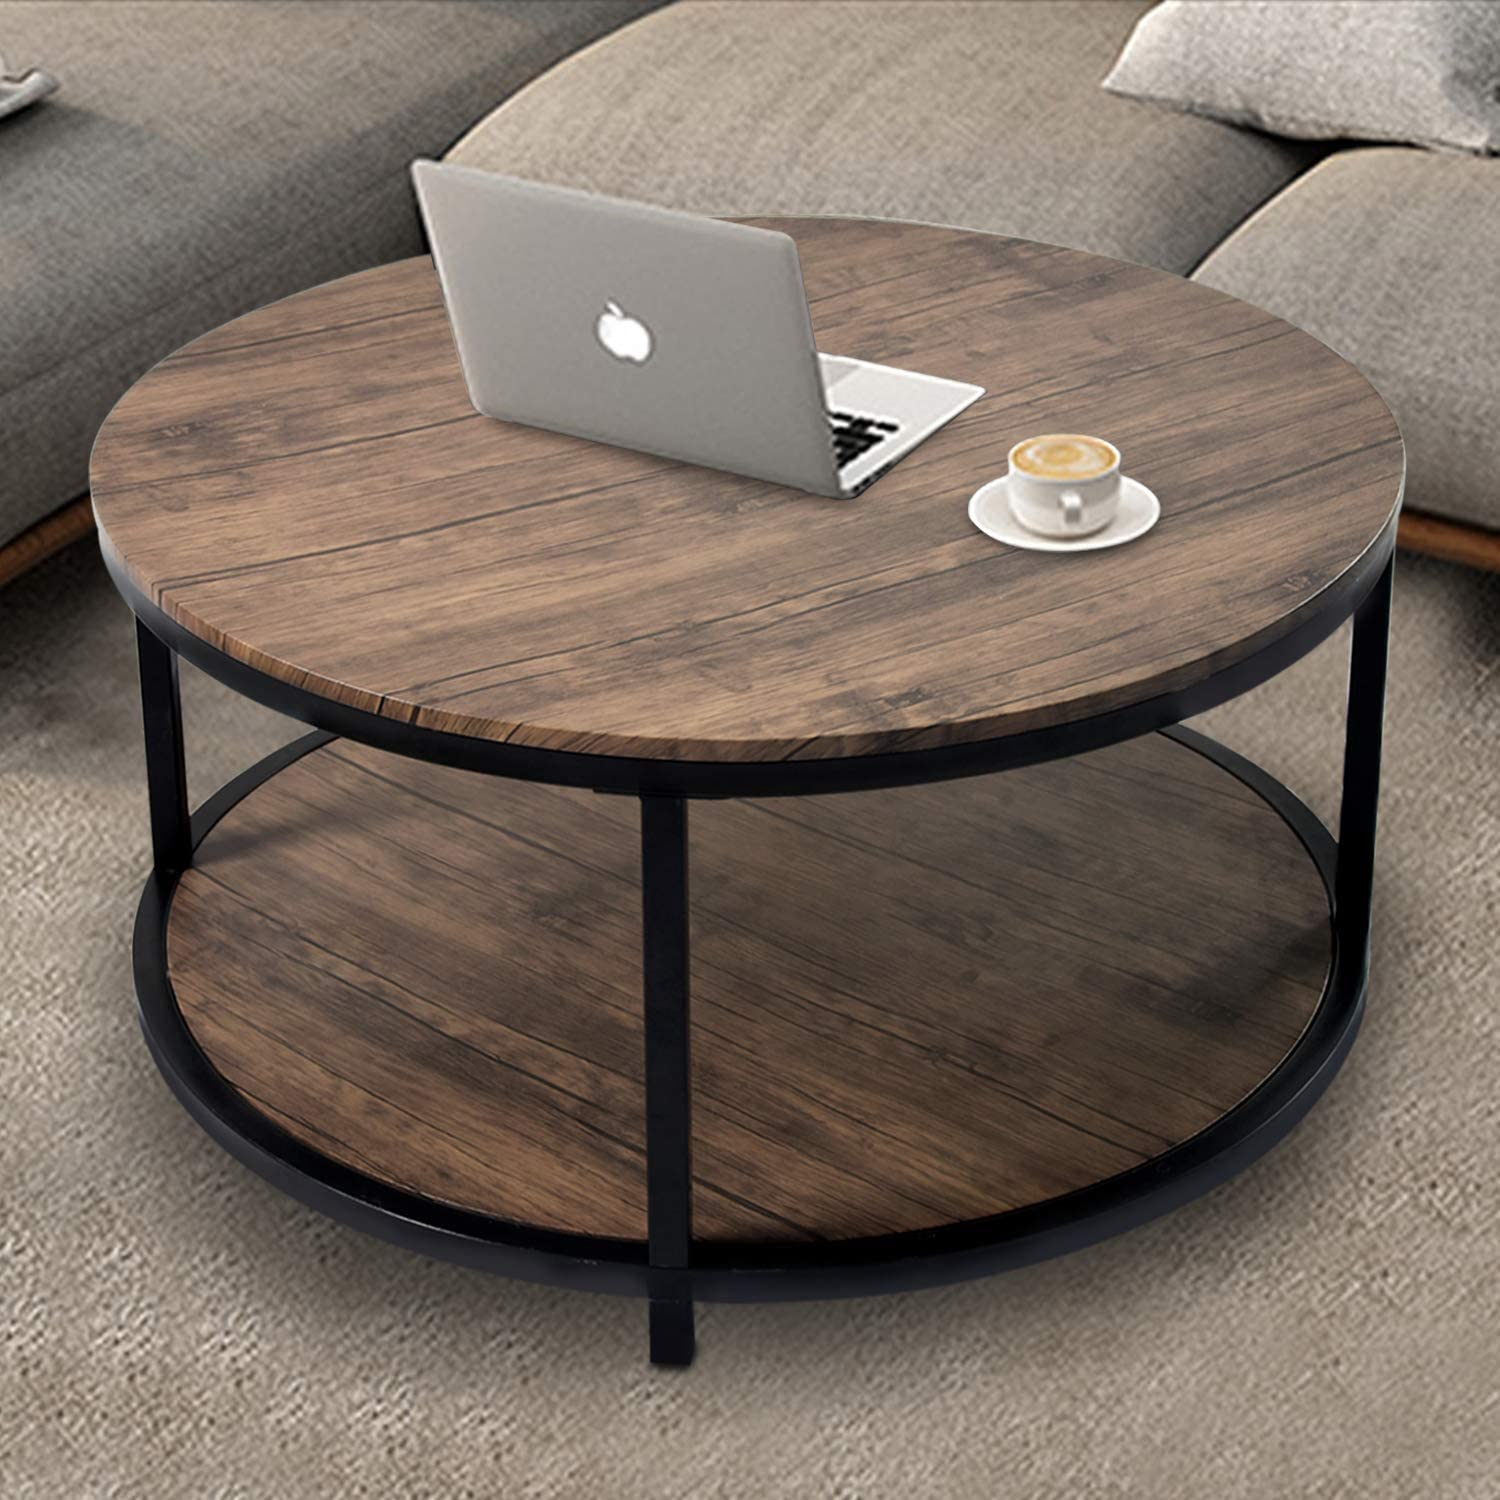 "- Amazon.com: 36""Round Coffee Table, Rustic Wooden Surface Top"